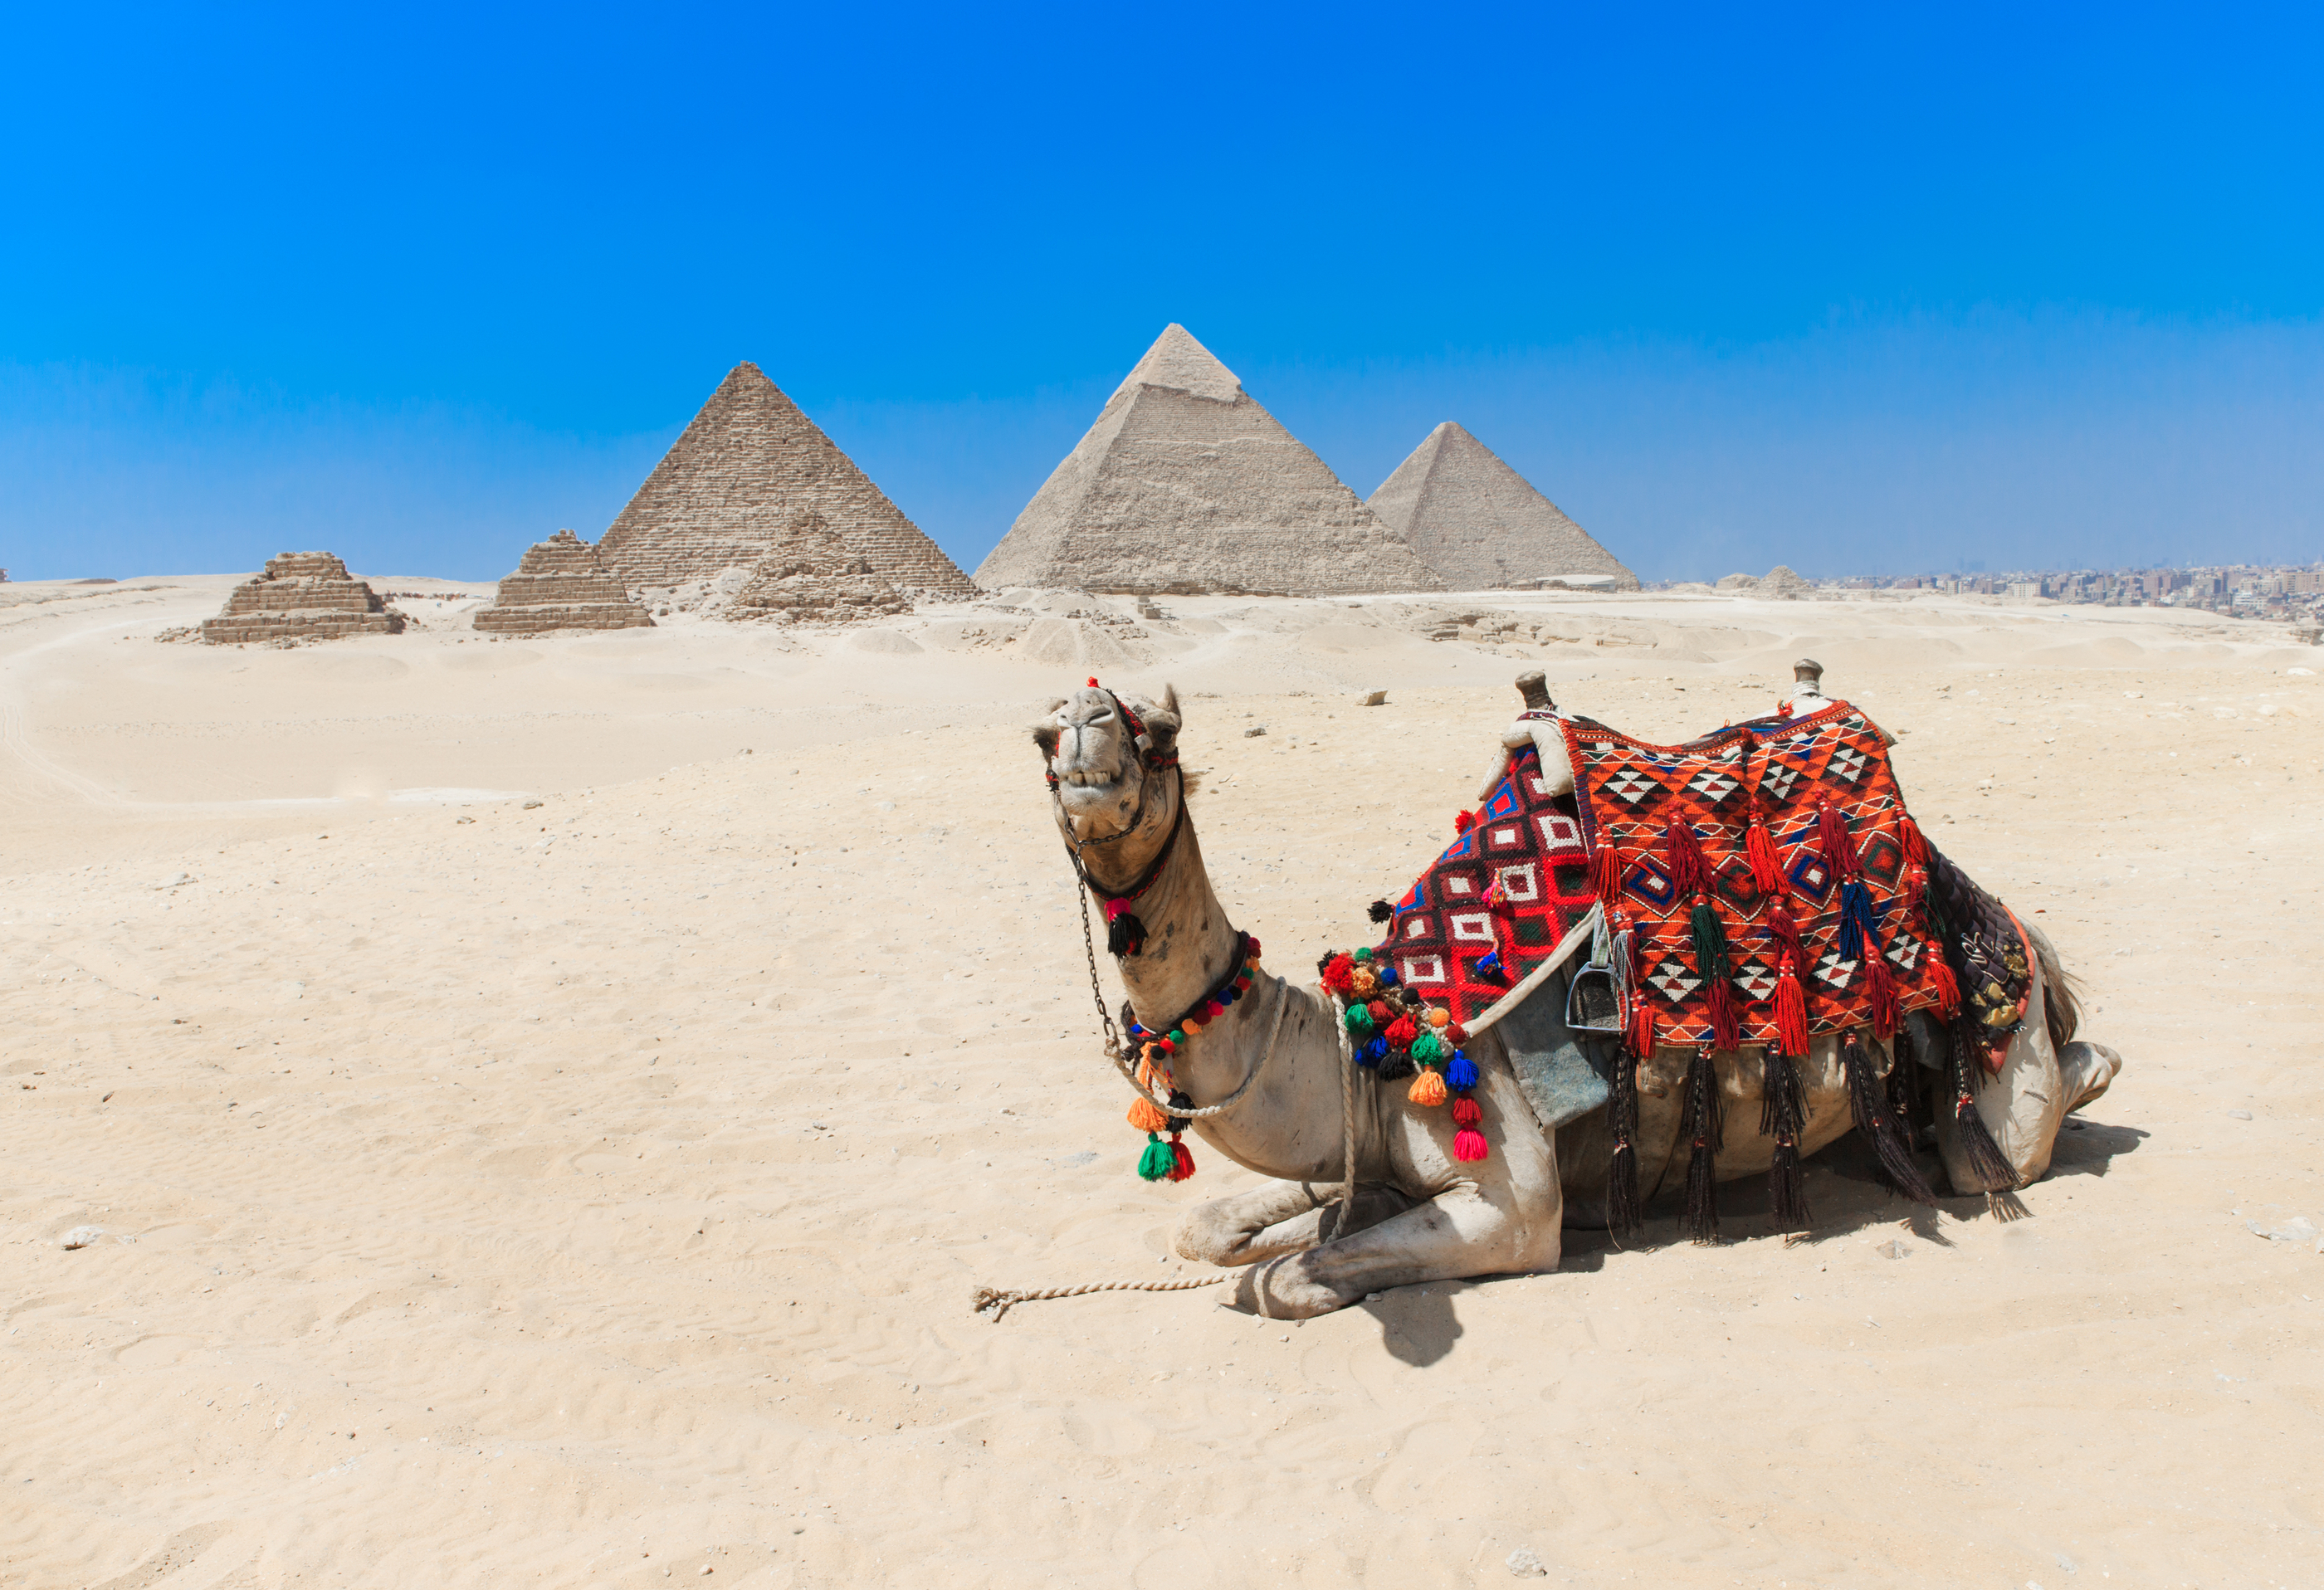 pyramids with a beautiful sky of Giza in Cairo, Egypt.__